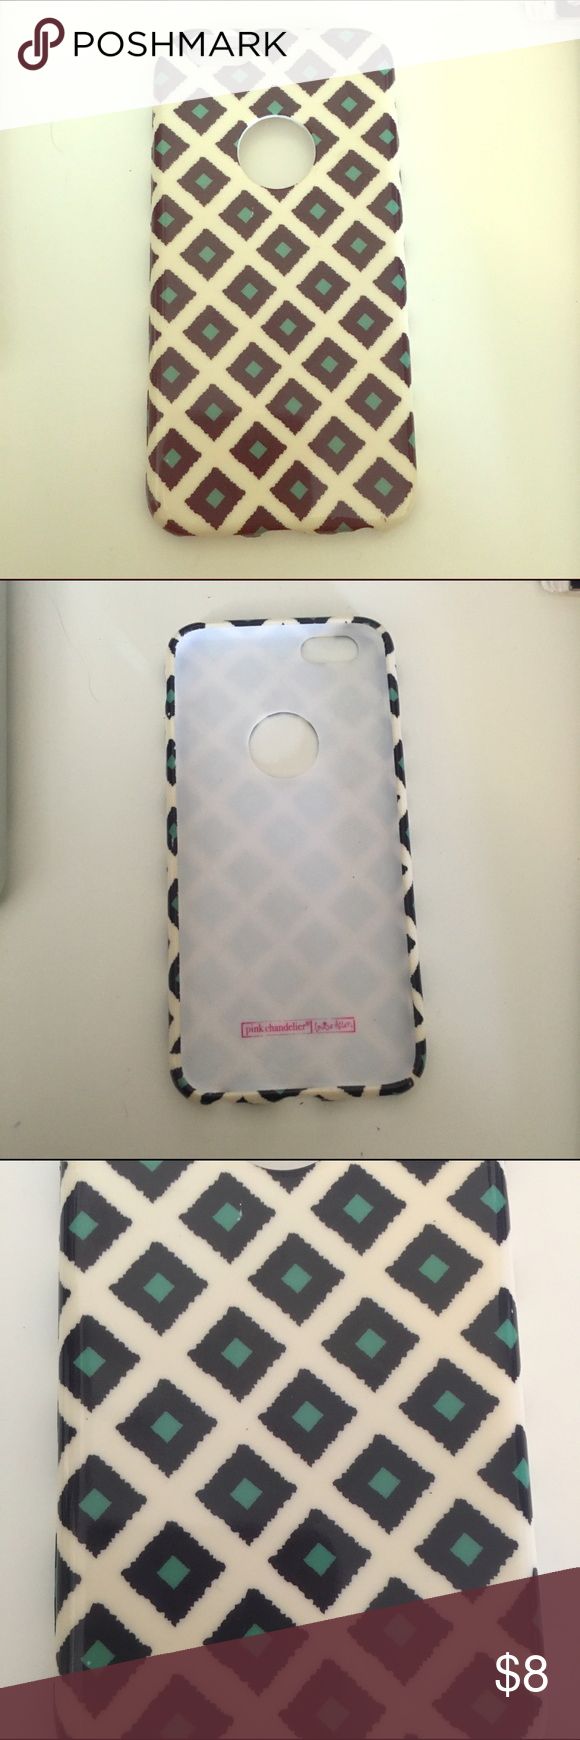 Never used iPhone 6/6s case Cream colored iPhone 6/6s case with diamond shaped pattern. Cutout where the apple logo is. Rubbery material. Never used. Pink Chandelier  Accessories Phone Cases